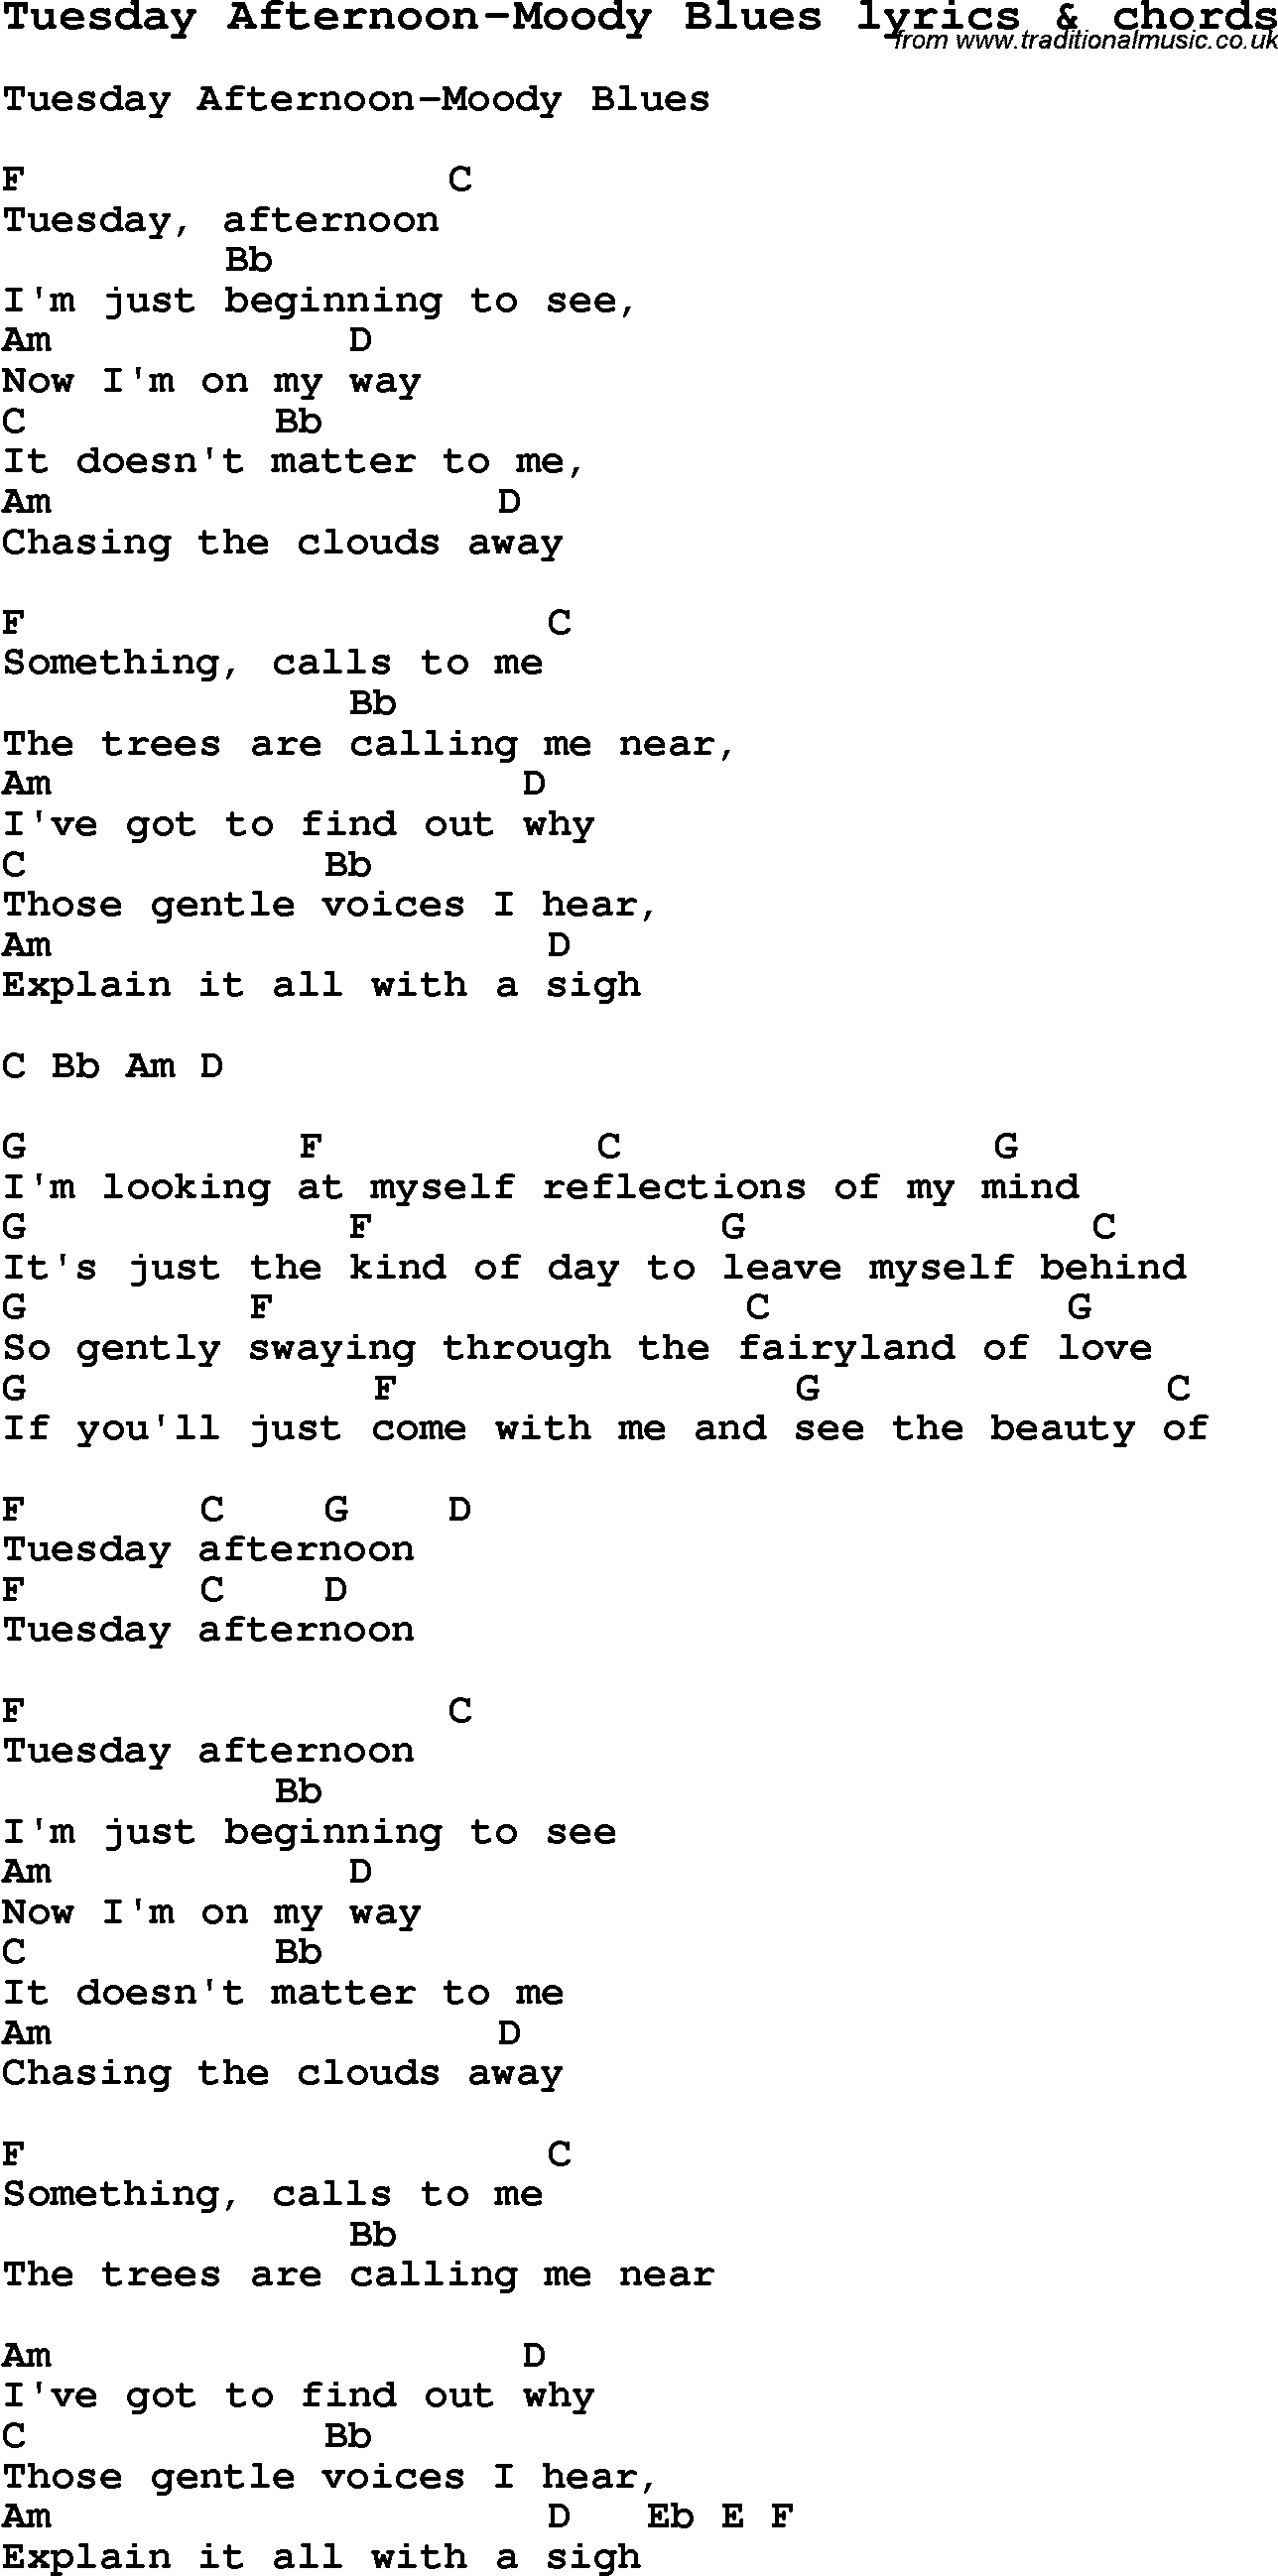 Love Song Lyrics For Tuesday Afternoon Moody Blues With Chords